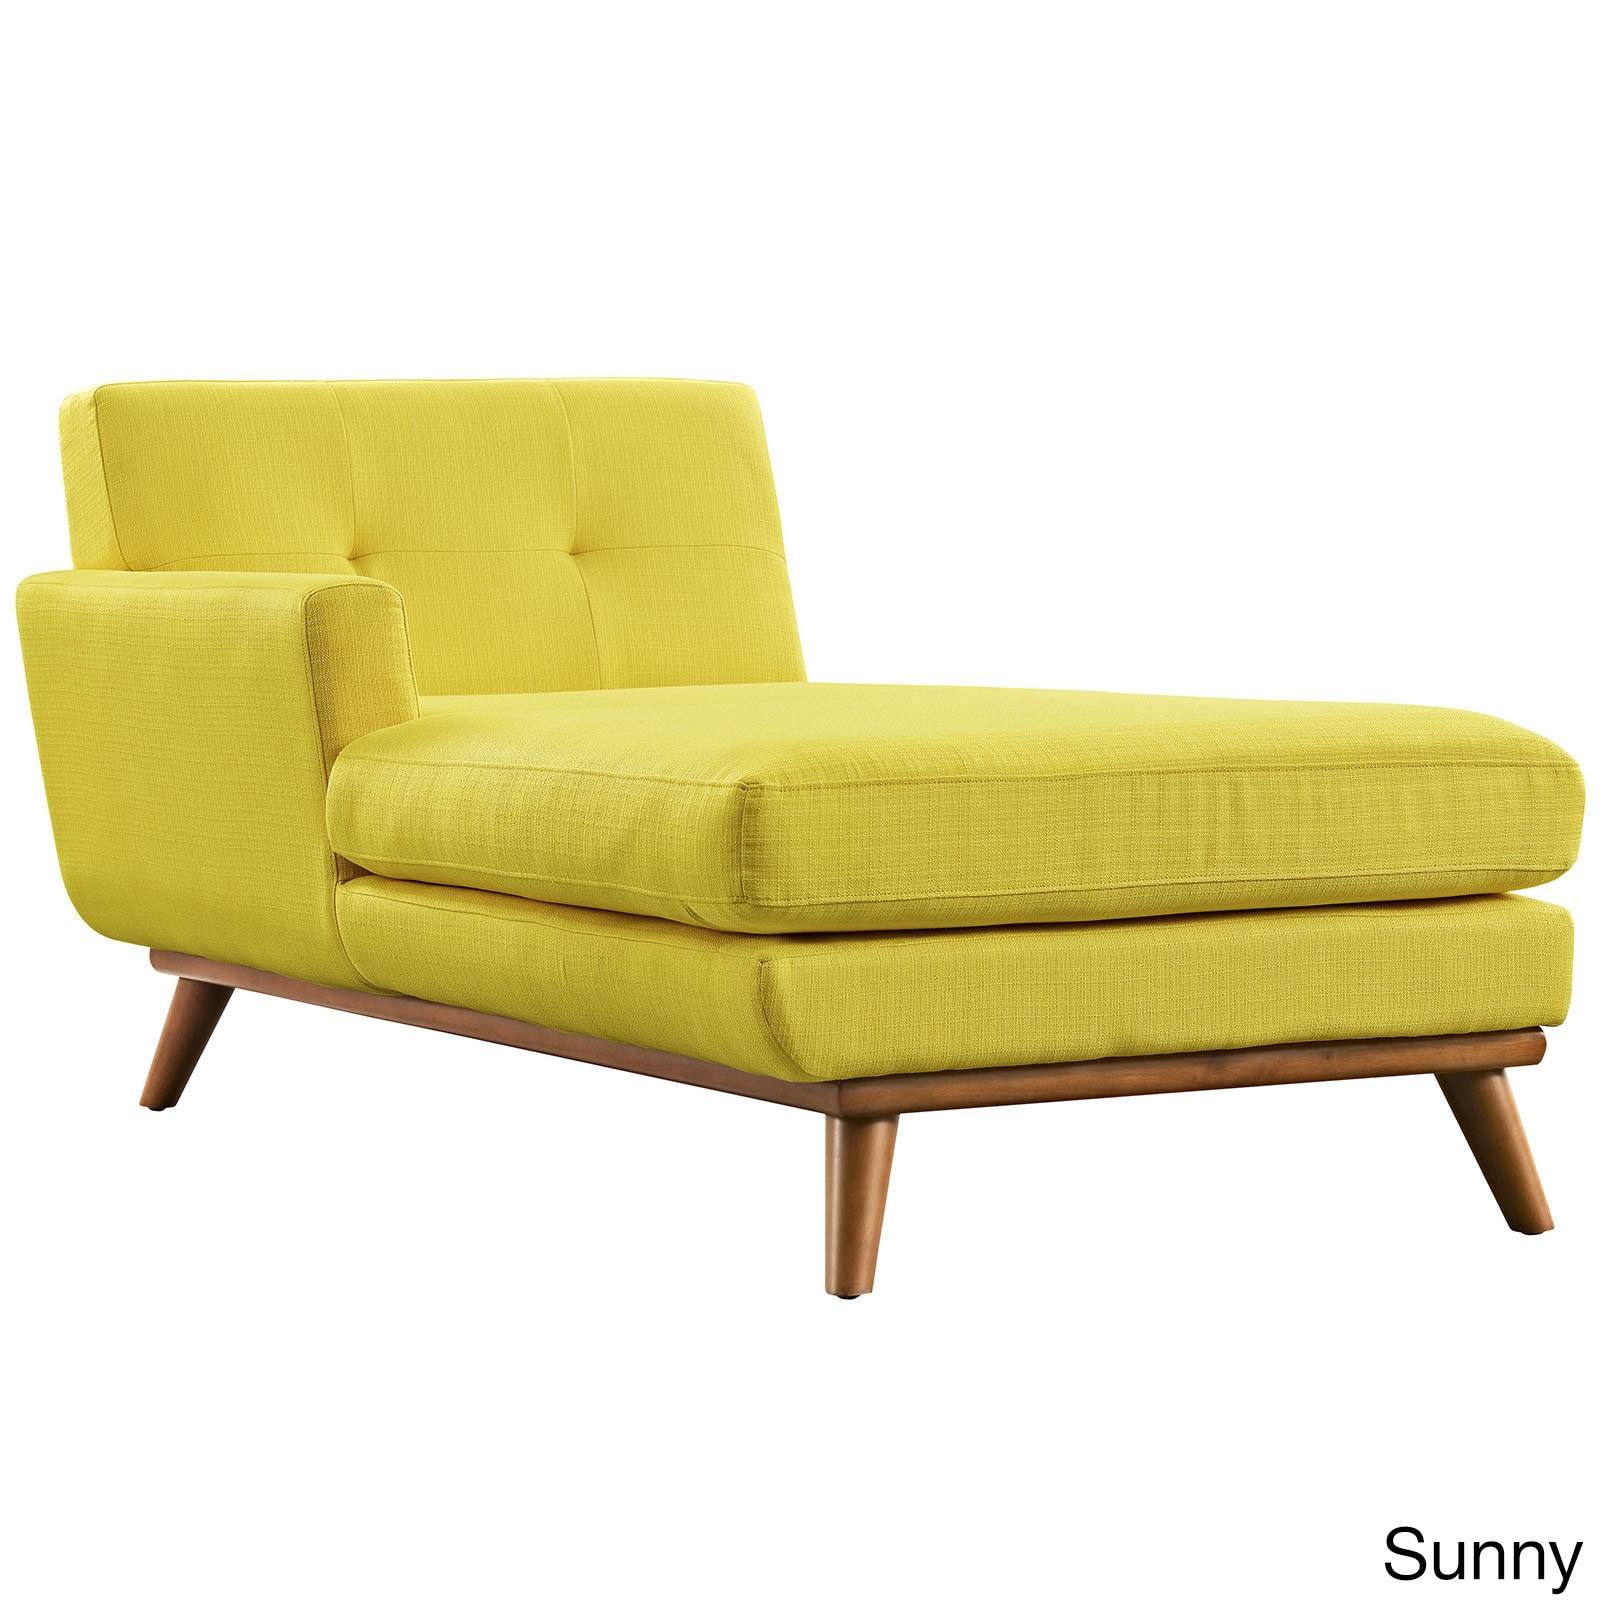 chaise by antonya chair christopher overstock product today knight lounge fabric free home garden tufted shipping